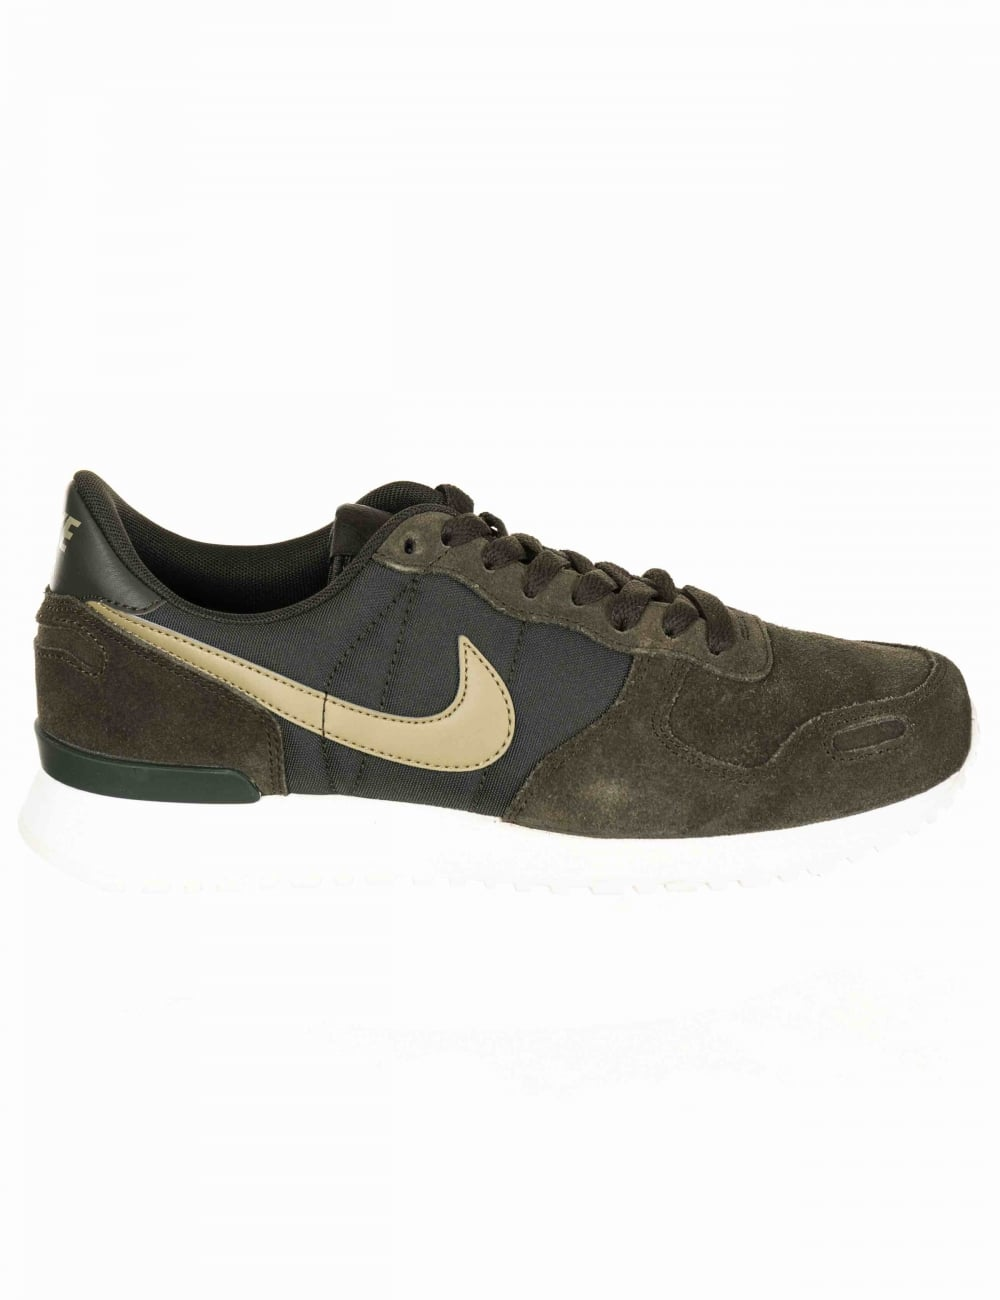 8754477911a Nike Air Vortex Ltr Trainers - Sequoia Neutal Olive - Footwear from ...